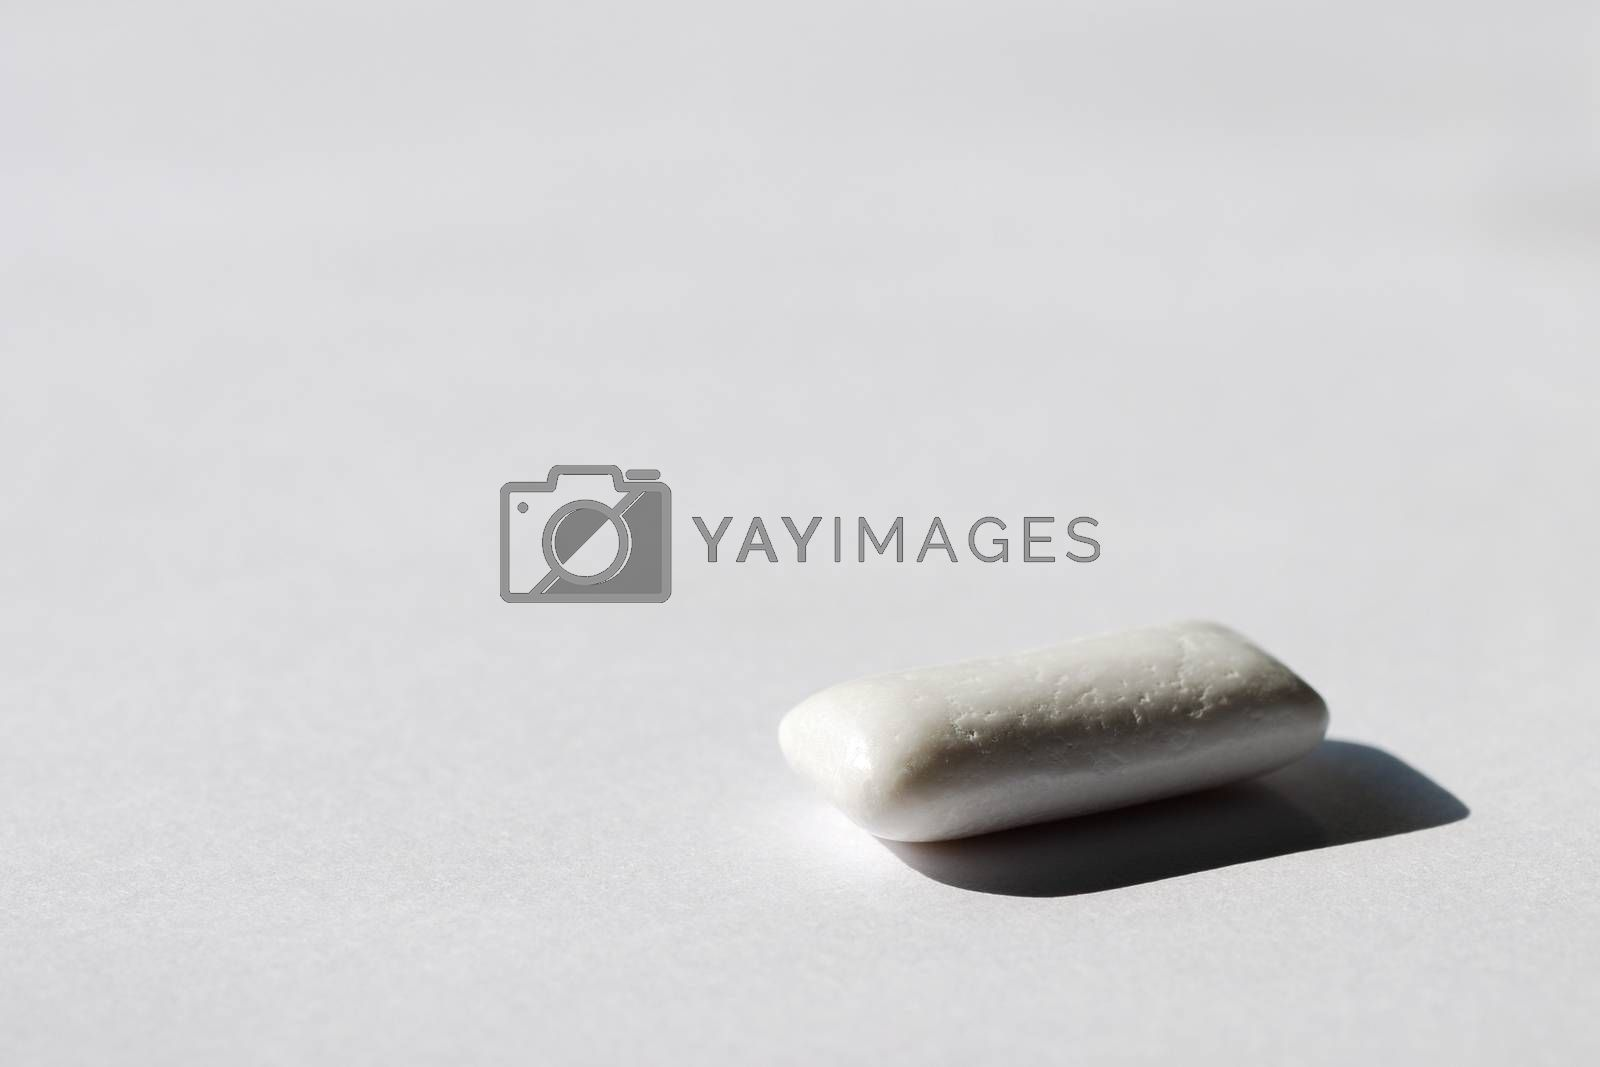 white chewing gum good for breath after eating on white background